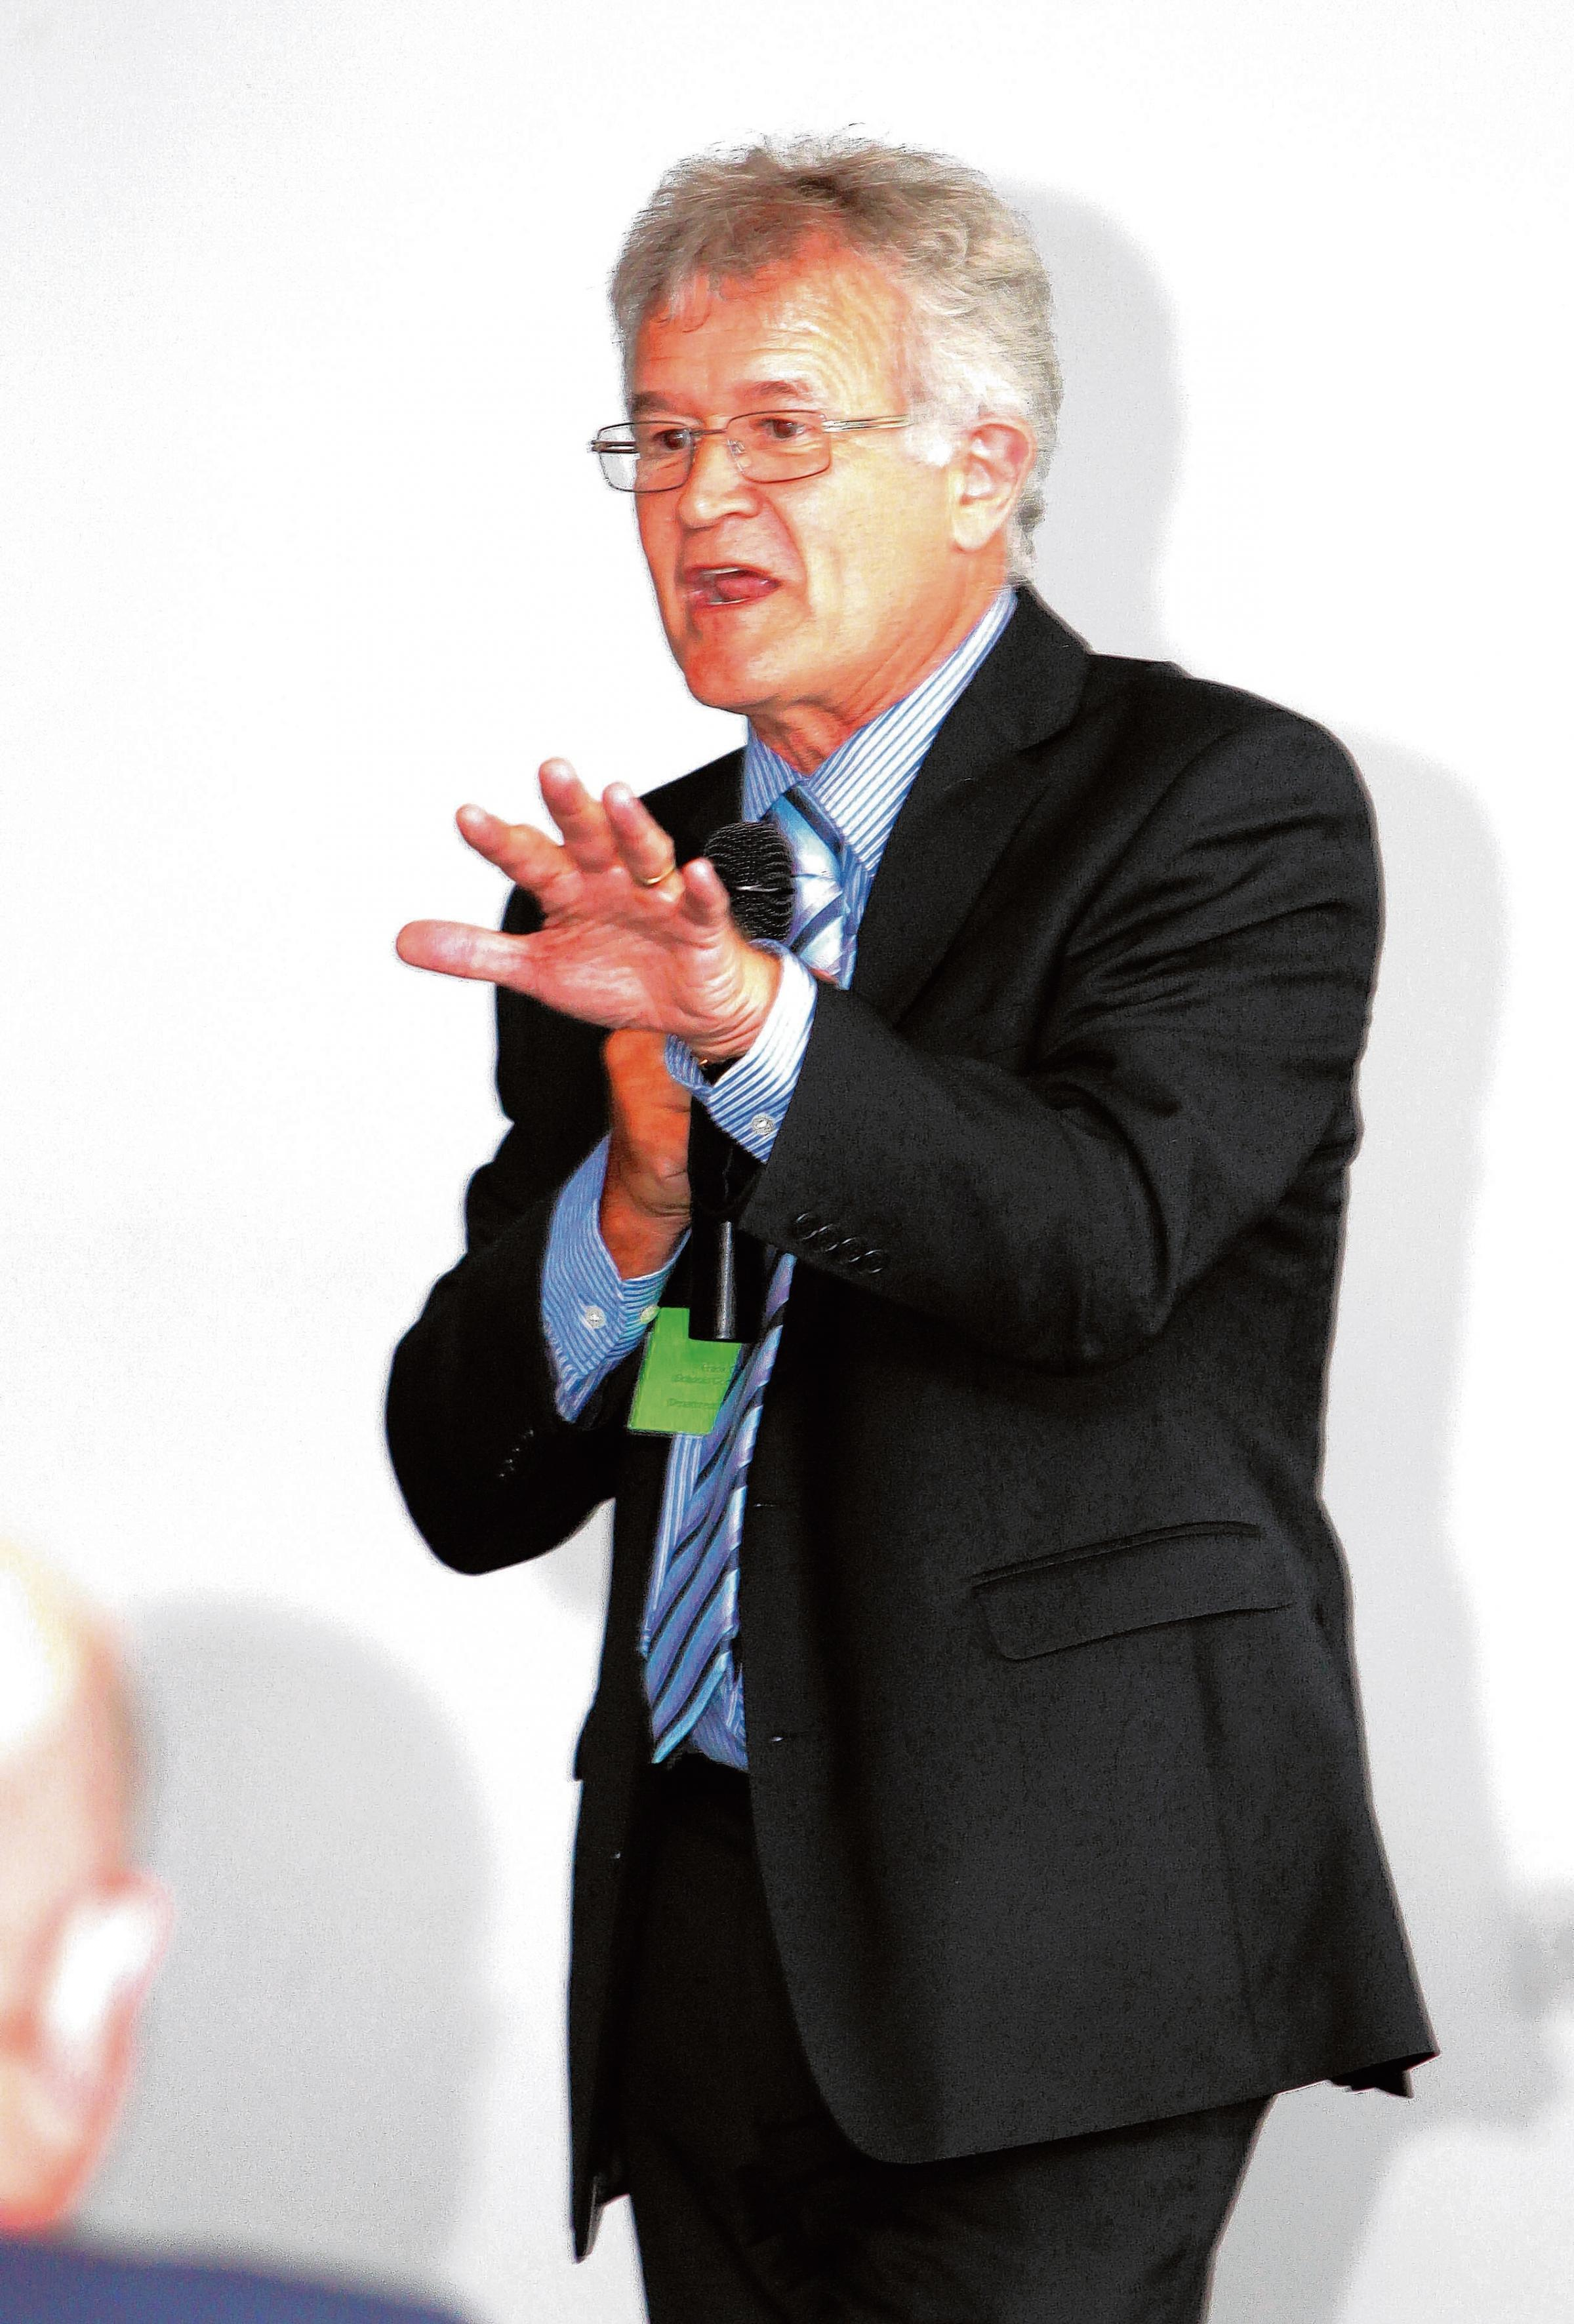 Frank Green spoke to school leaders in Colchester yesterday